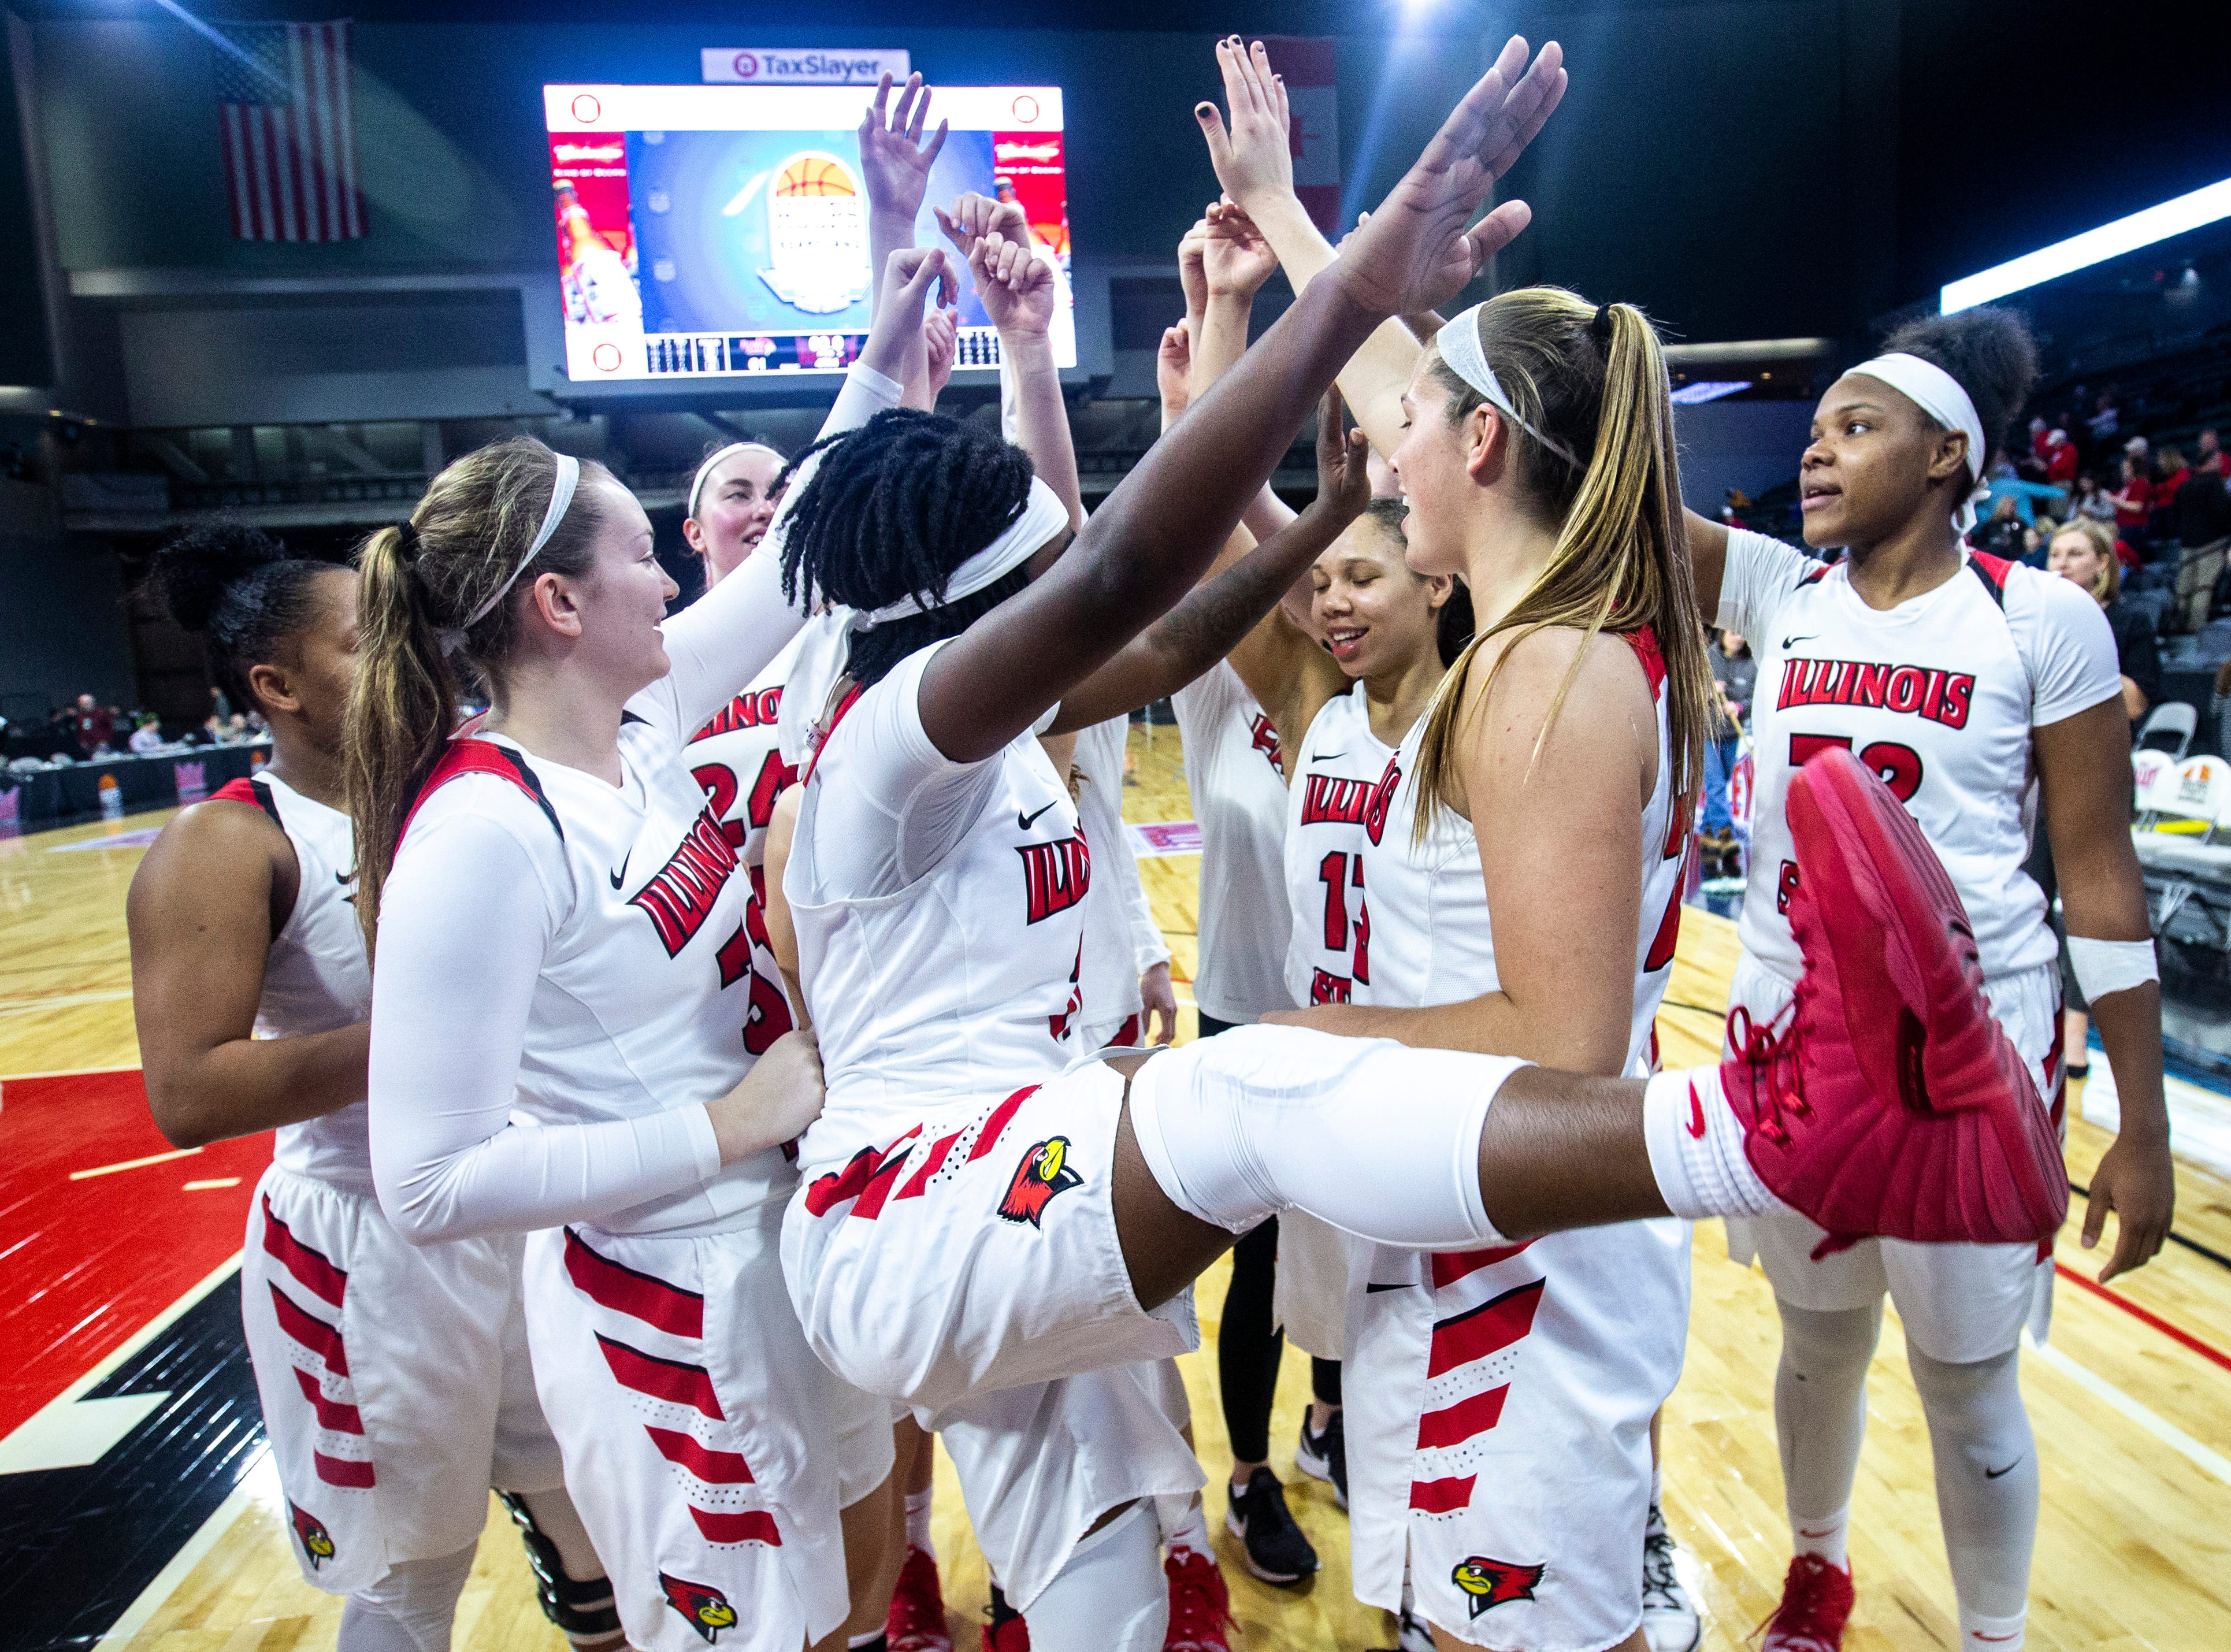 Illinois State Redbirds celebrate after a NCAA Missouri Valley Conference women's basketball quarterfinal against Bradley tournament game, Friday, March 15, 2019, at the TaxSlayer Center in Moline, Illinois.